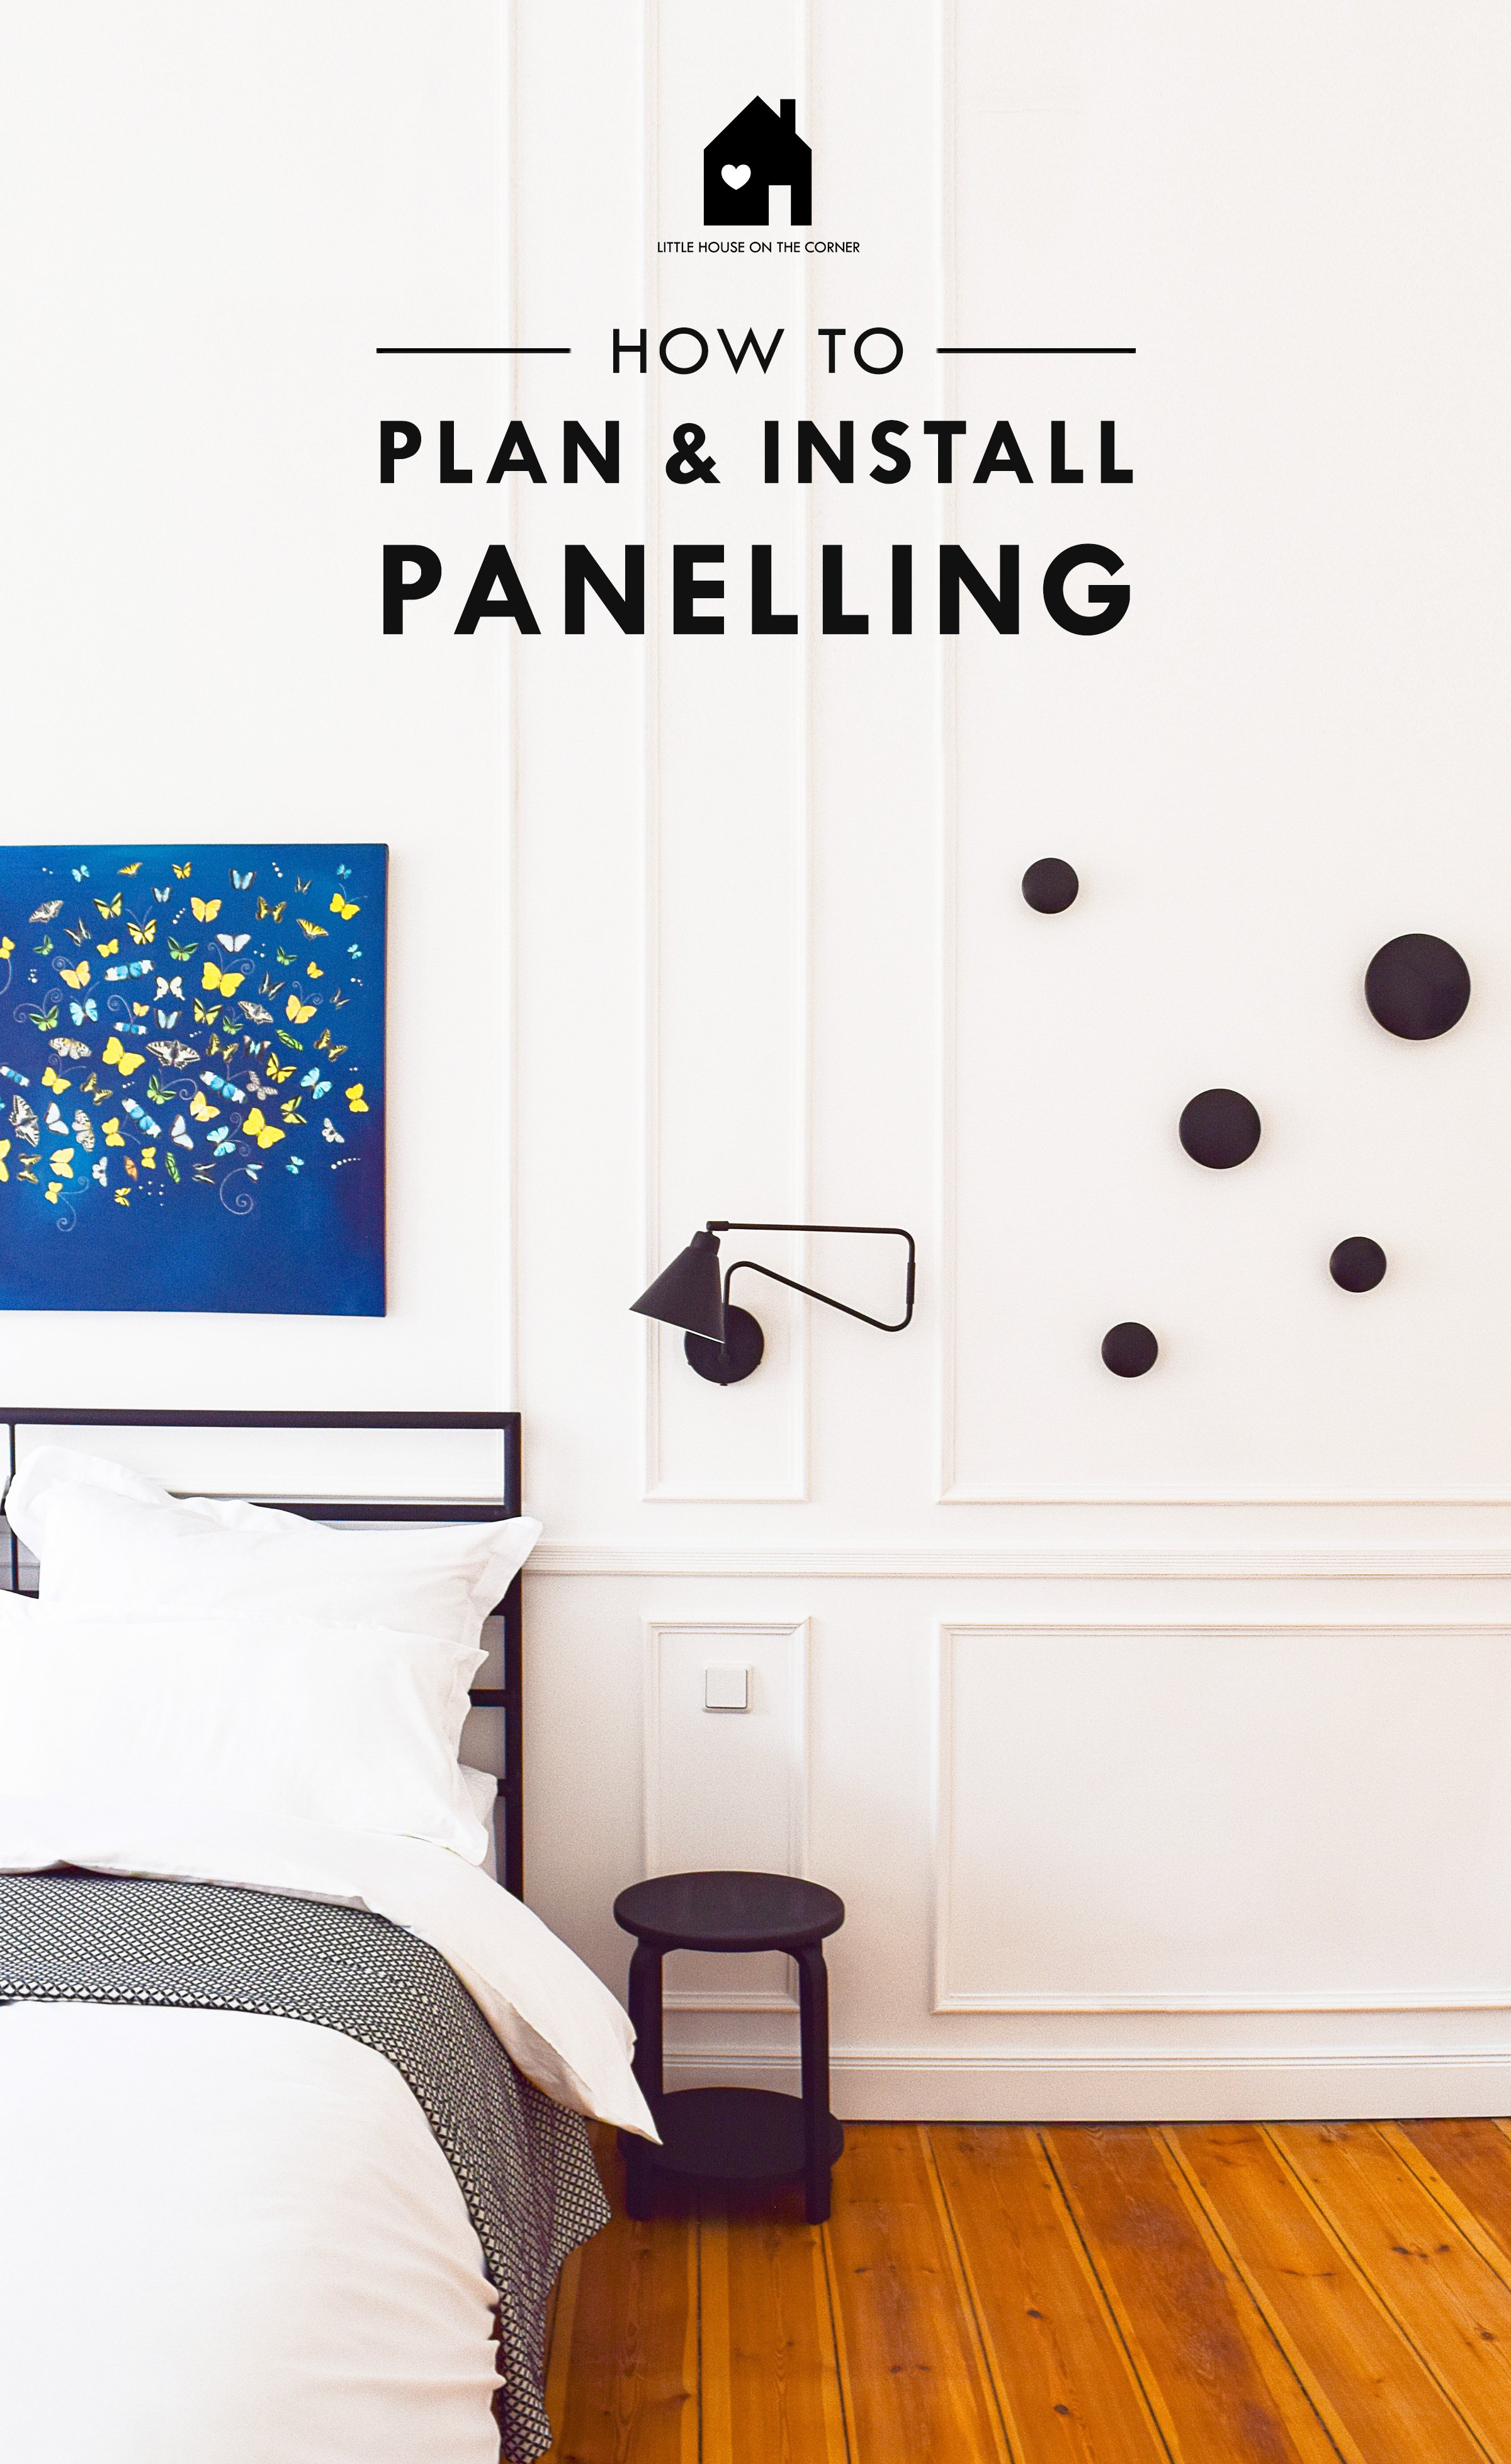 How To Plan And Install Panelling   Ultimate DIY Guide On How To Install Panelling Yourself   Little House On The Corner